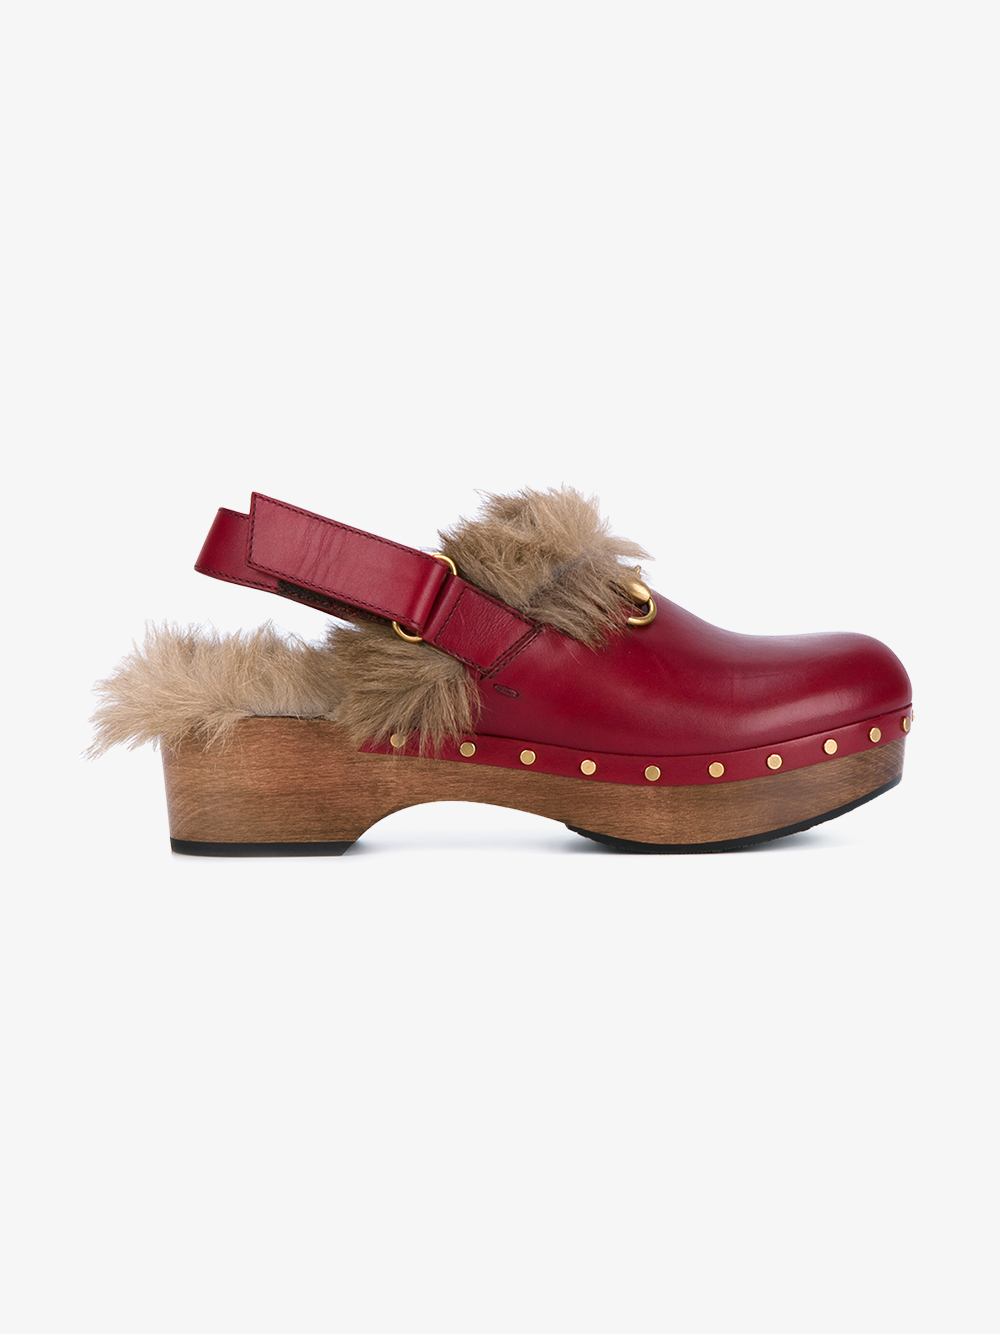 Kangaroo Red Leather Shoes